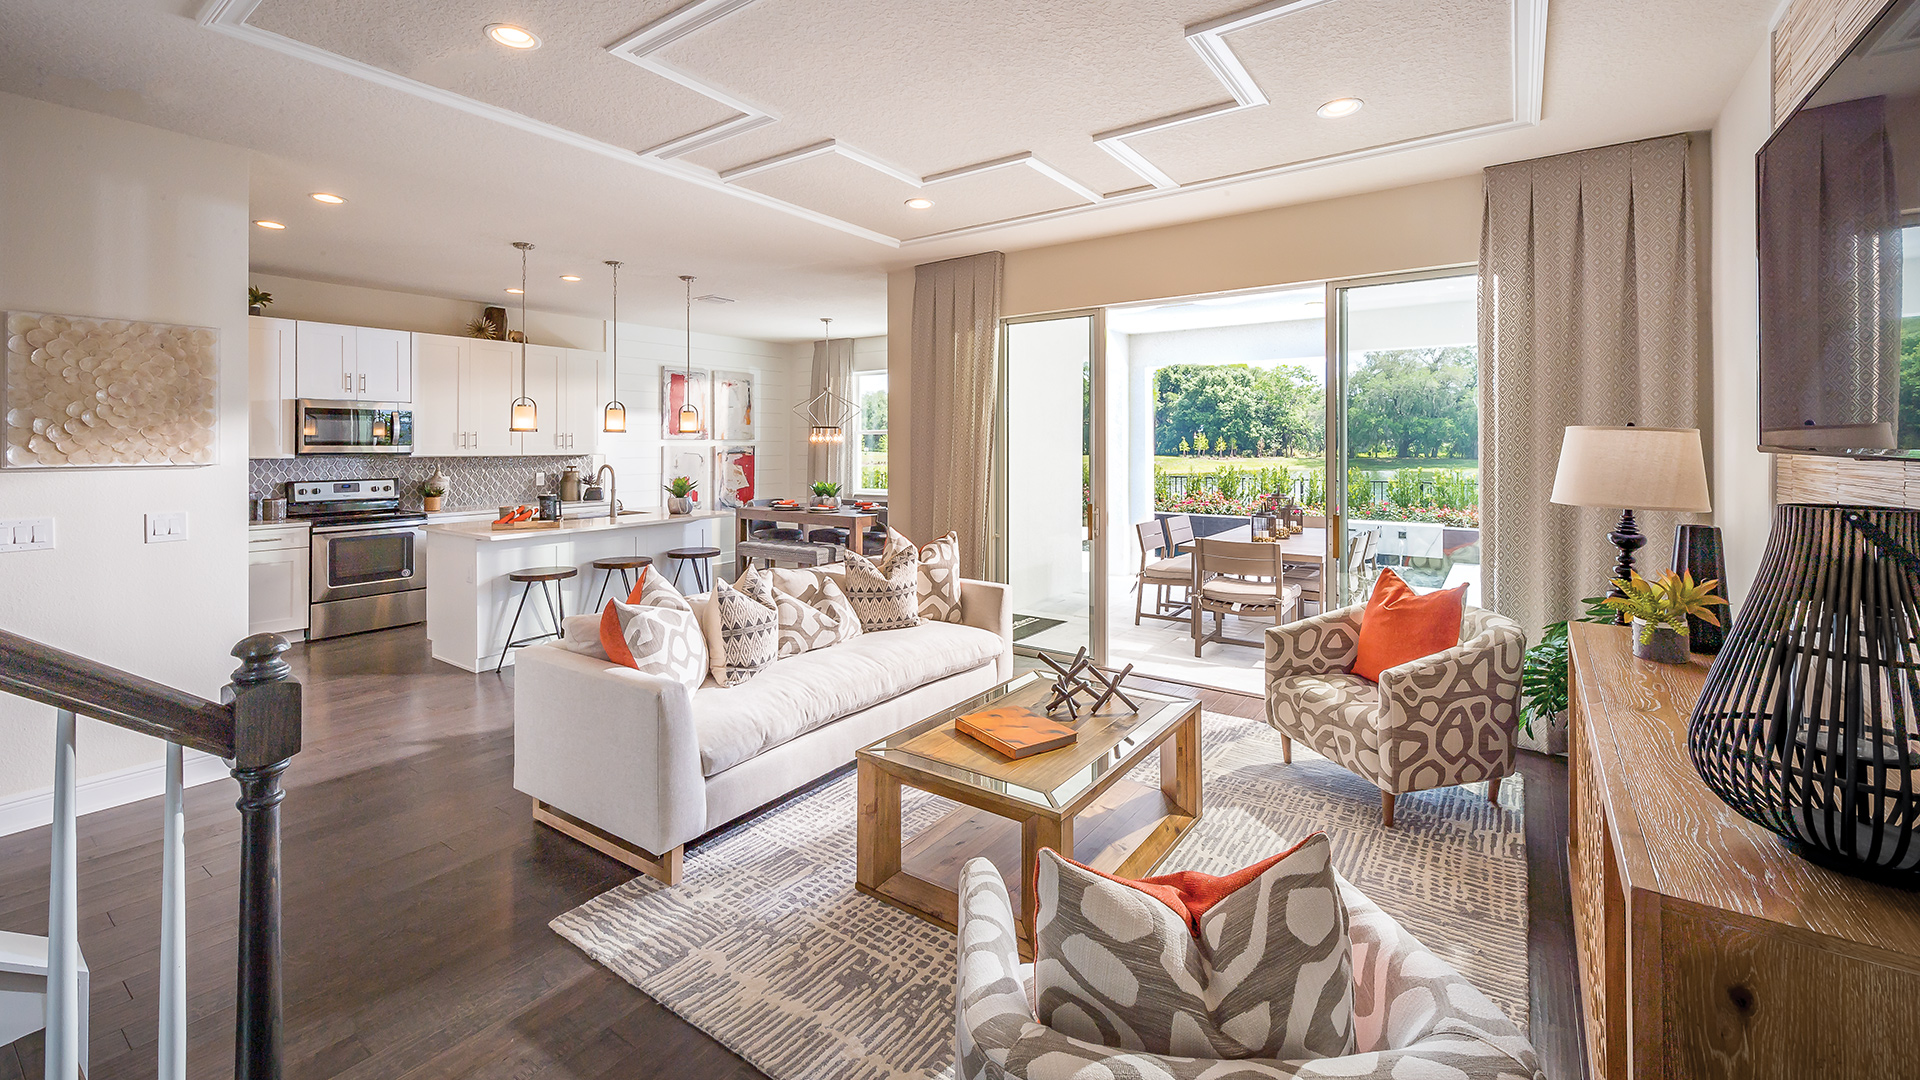 New Luxury Homes For Sale in Sanford, FL | Parkview Place on map of port of miami florida, map of the acreage florida, map of lakeland florida, map of south gulf cove florida, map of gainesville florida, map of ft. walton florida, map of lawtey florida, map of ruskin florida, full large map of florida, map of dover florida, map of everglades florida, map of orange springs florida, map of coconut grove florida, map of tampa florida, map of saint lucie florida, map of indian creek florida, map of davie florida, map of micco florida, map of orlando florida, map of chokoloskee florida,